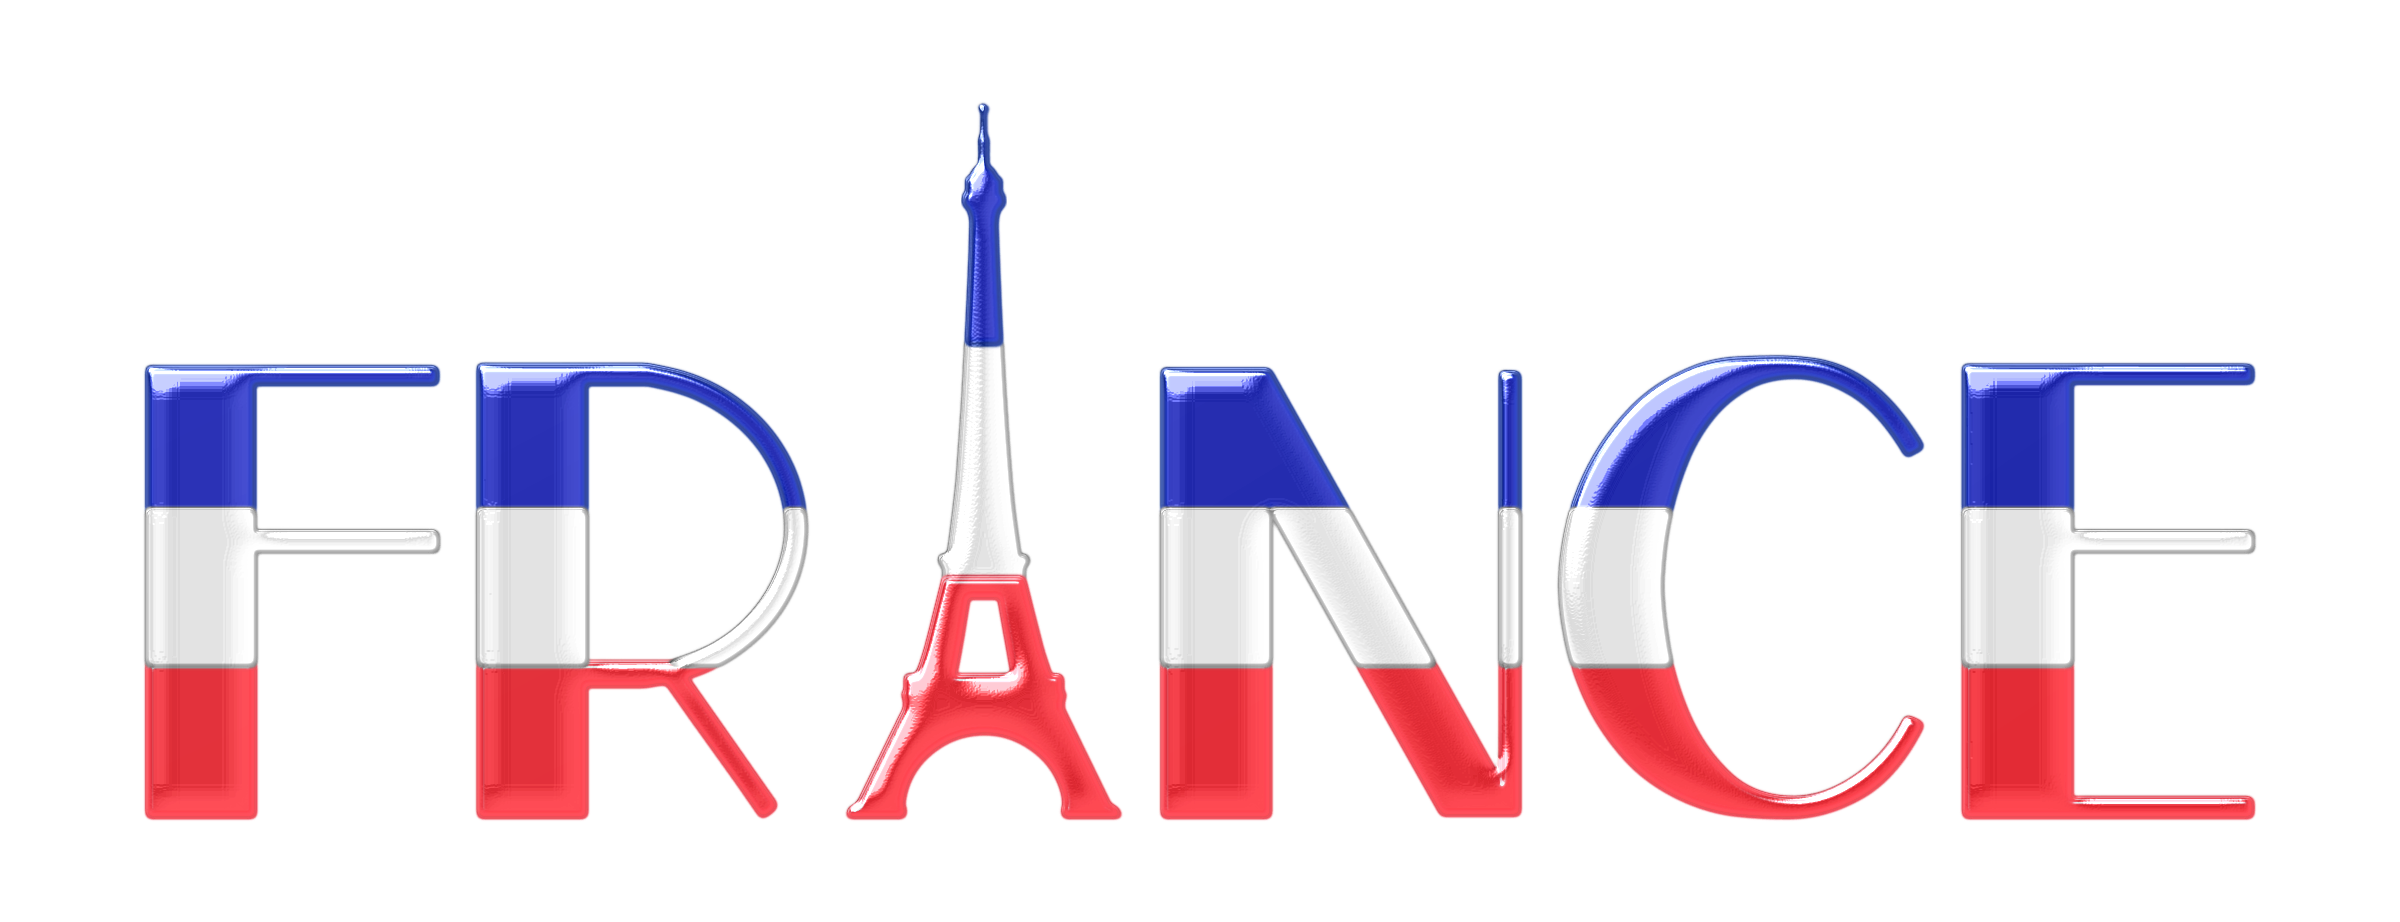 graphic black and white Typography enhanced big image. France clipart